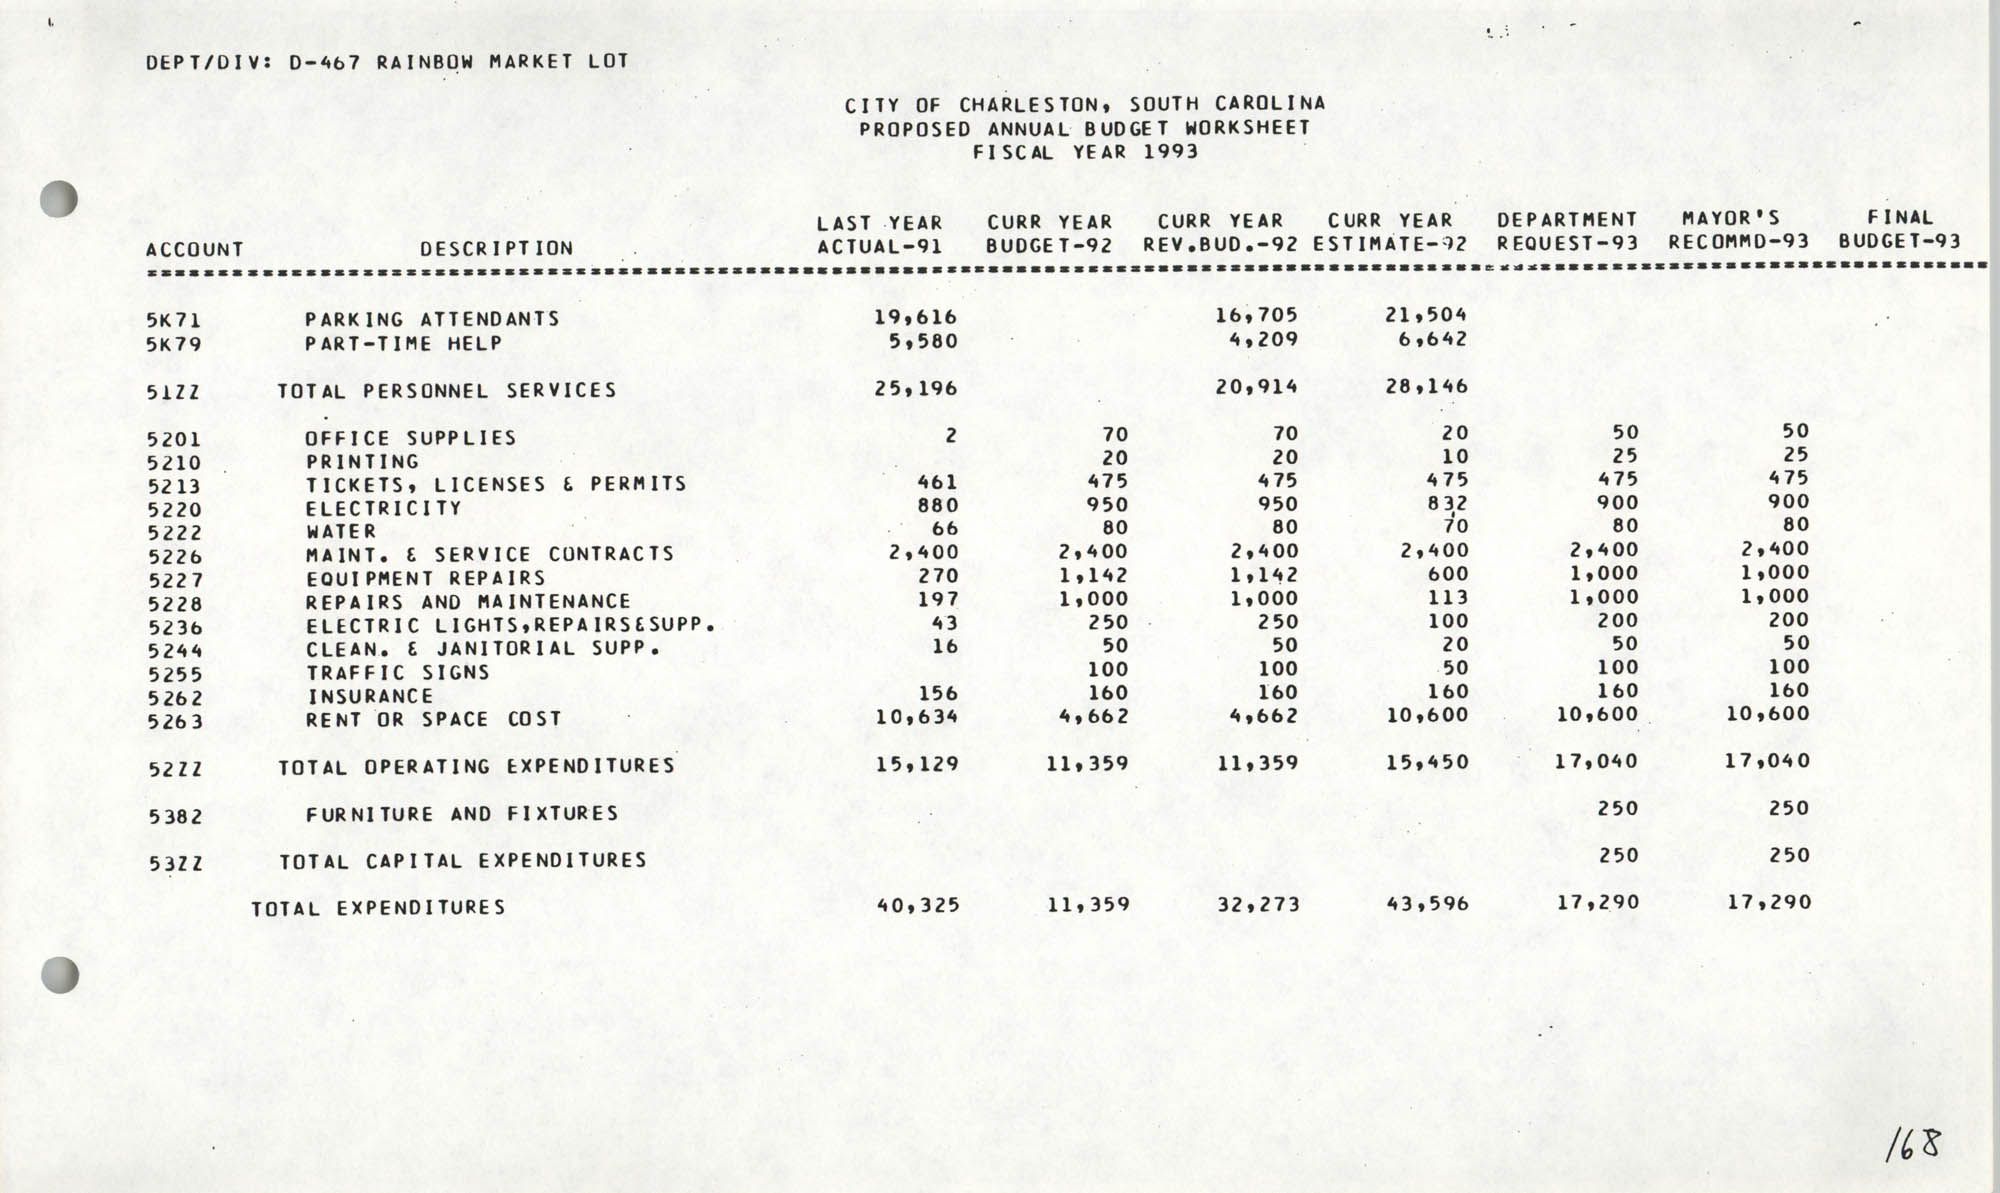 The City Council of Charleston, South Carolina, 1993 Budget, Page 168